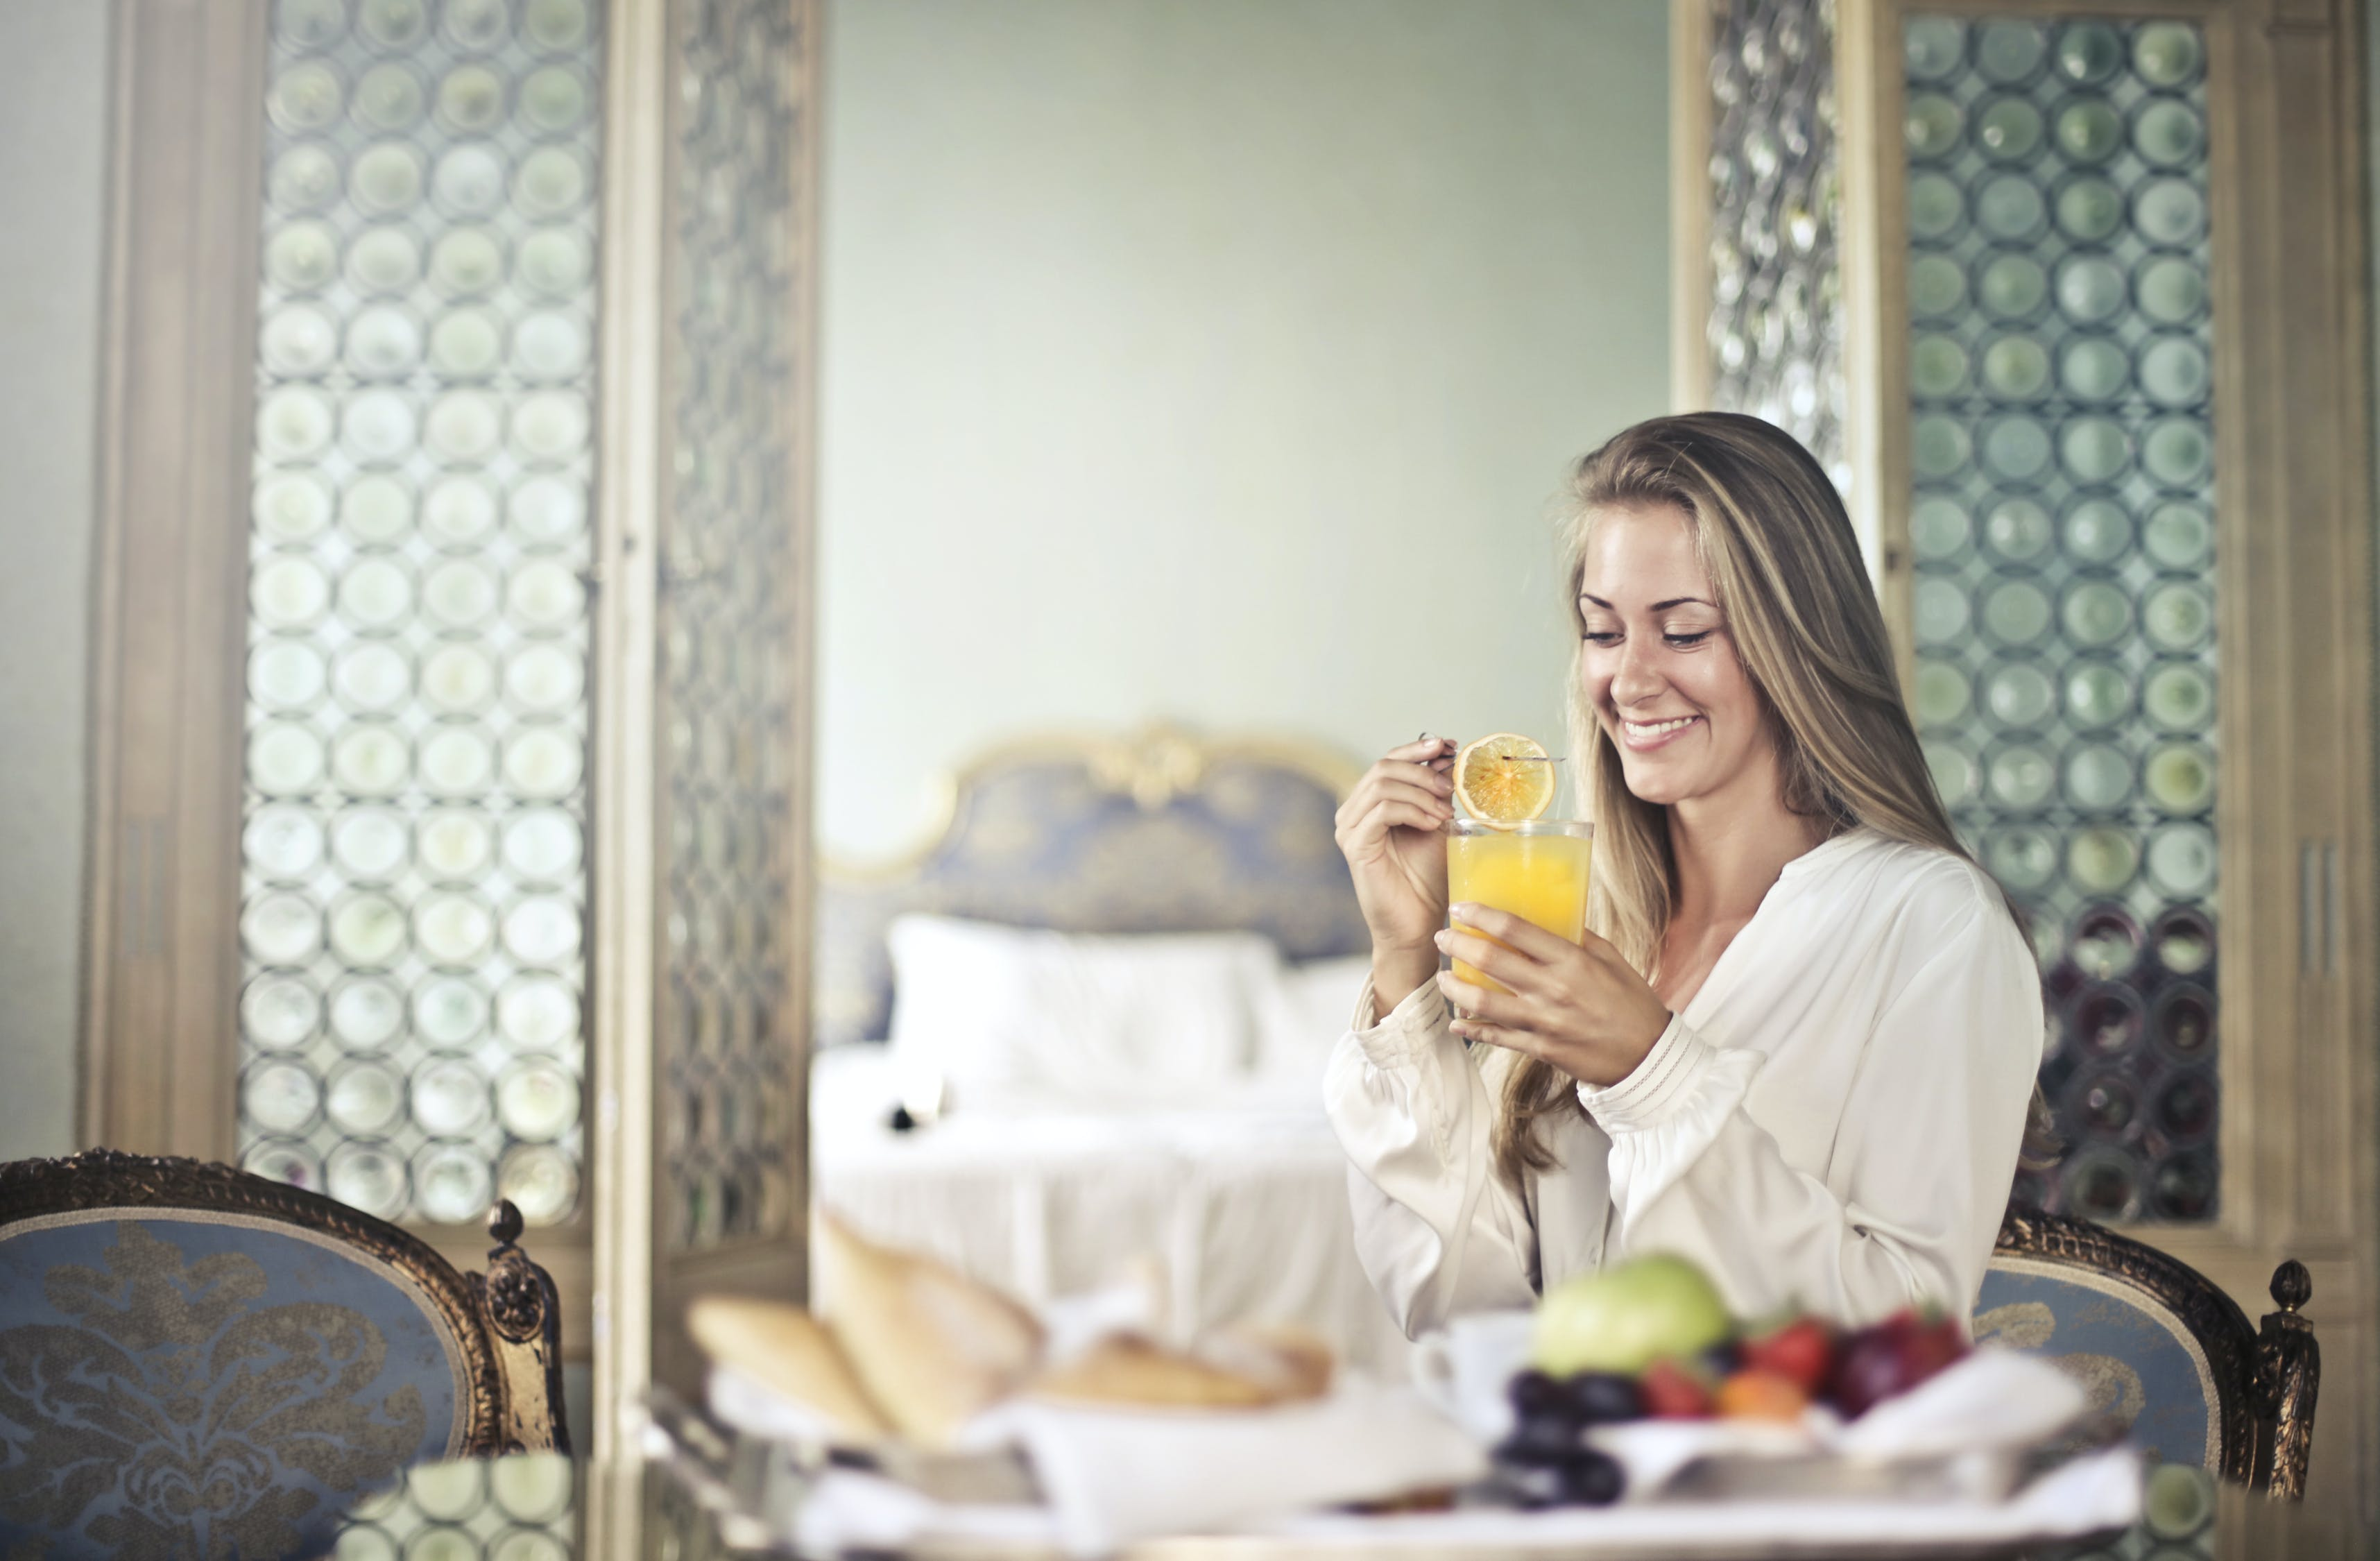 Cheerful woman enjoying breakfast in morning